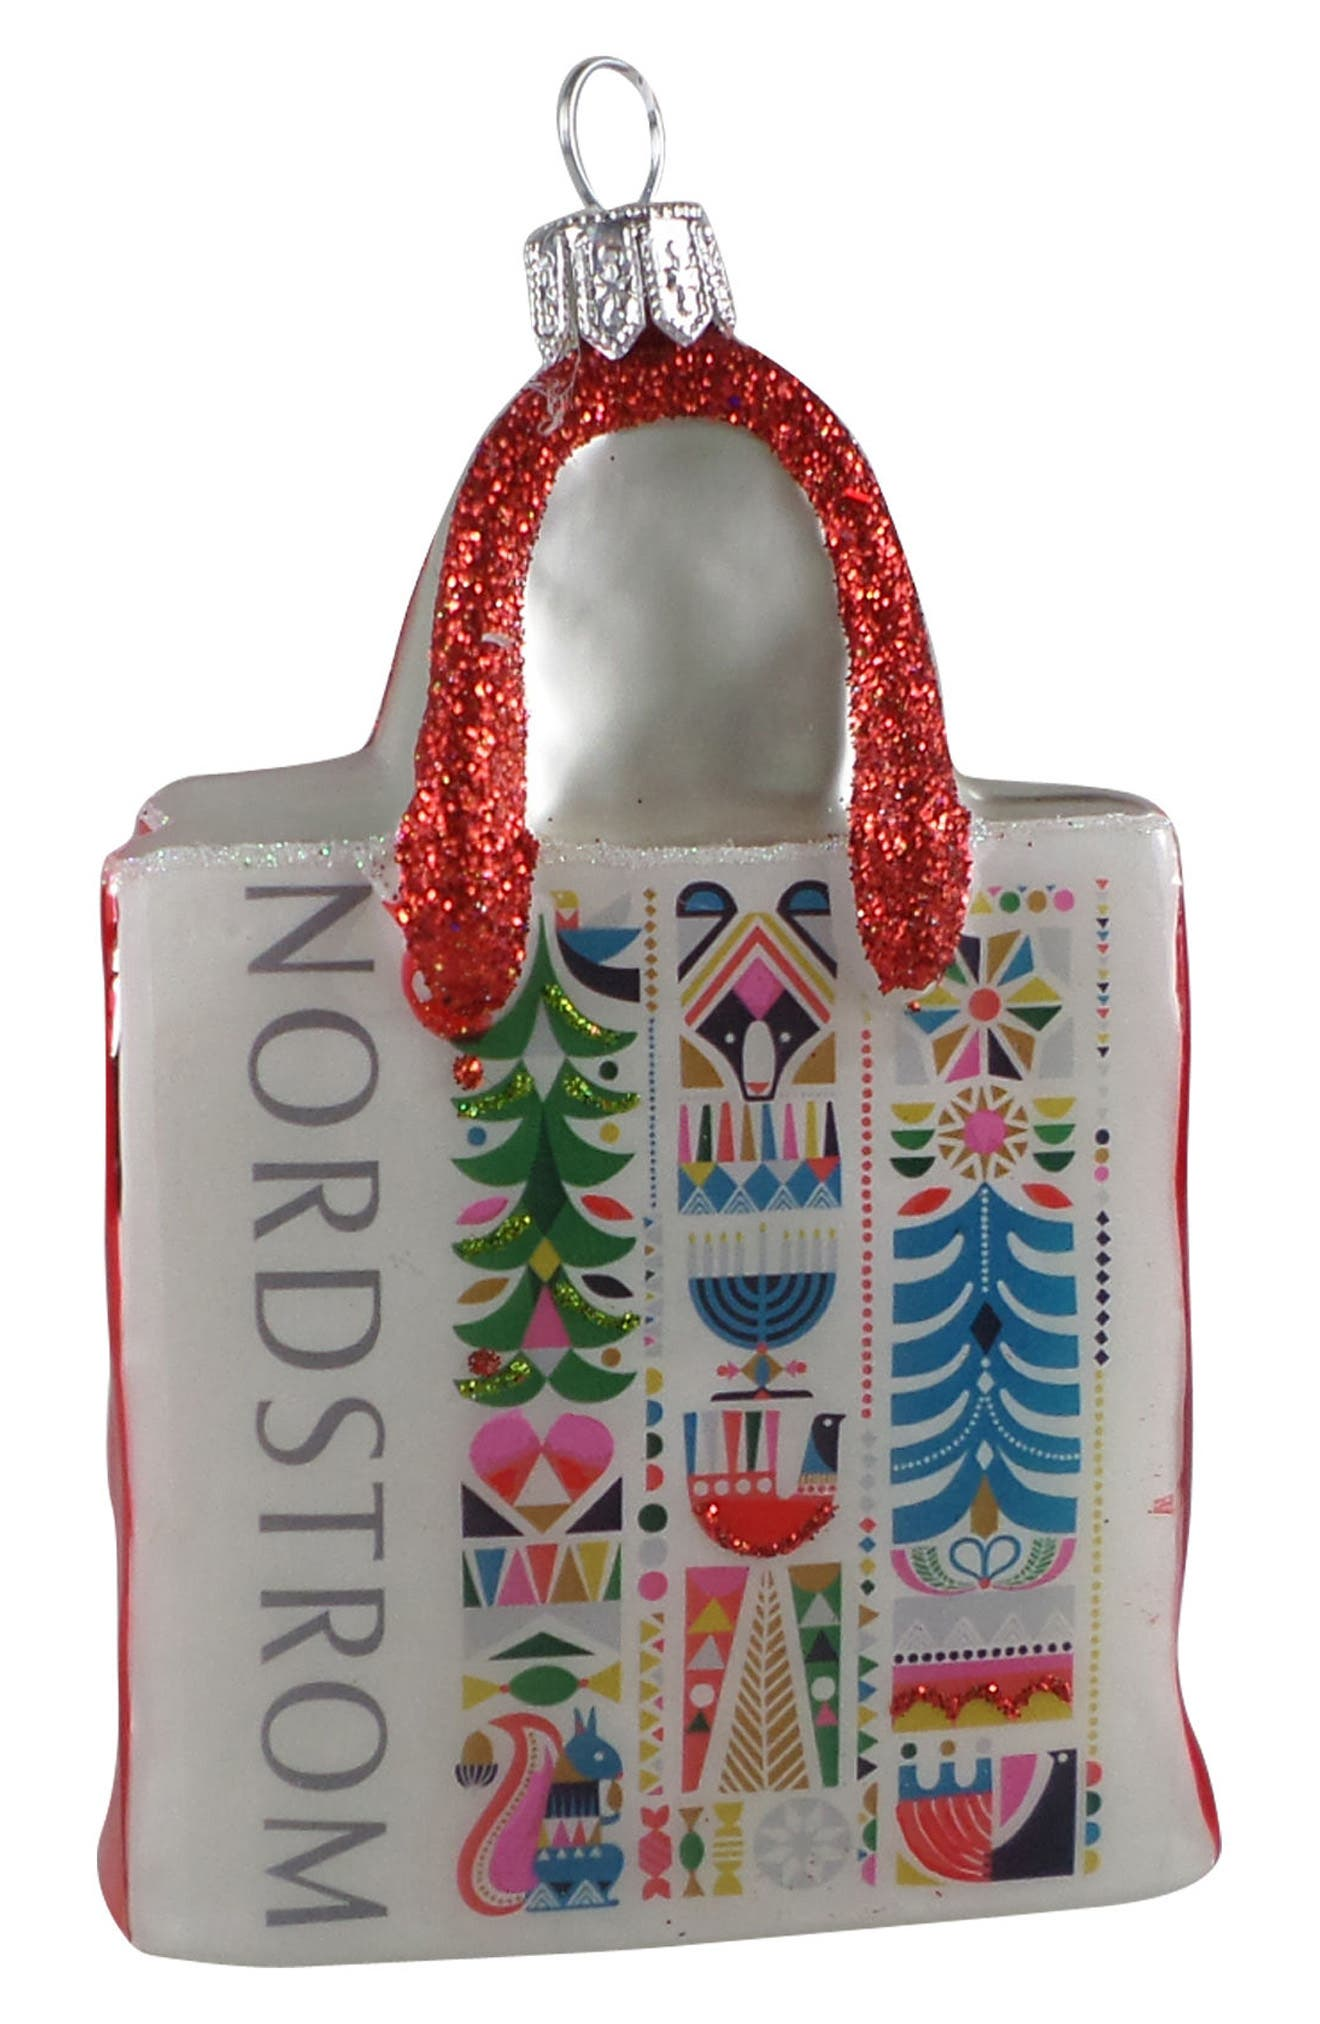 Nordstrom at Home Nordstrom Shopping Bag 2017 Ornament